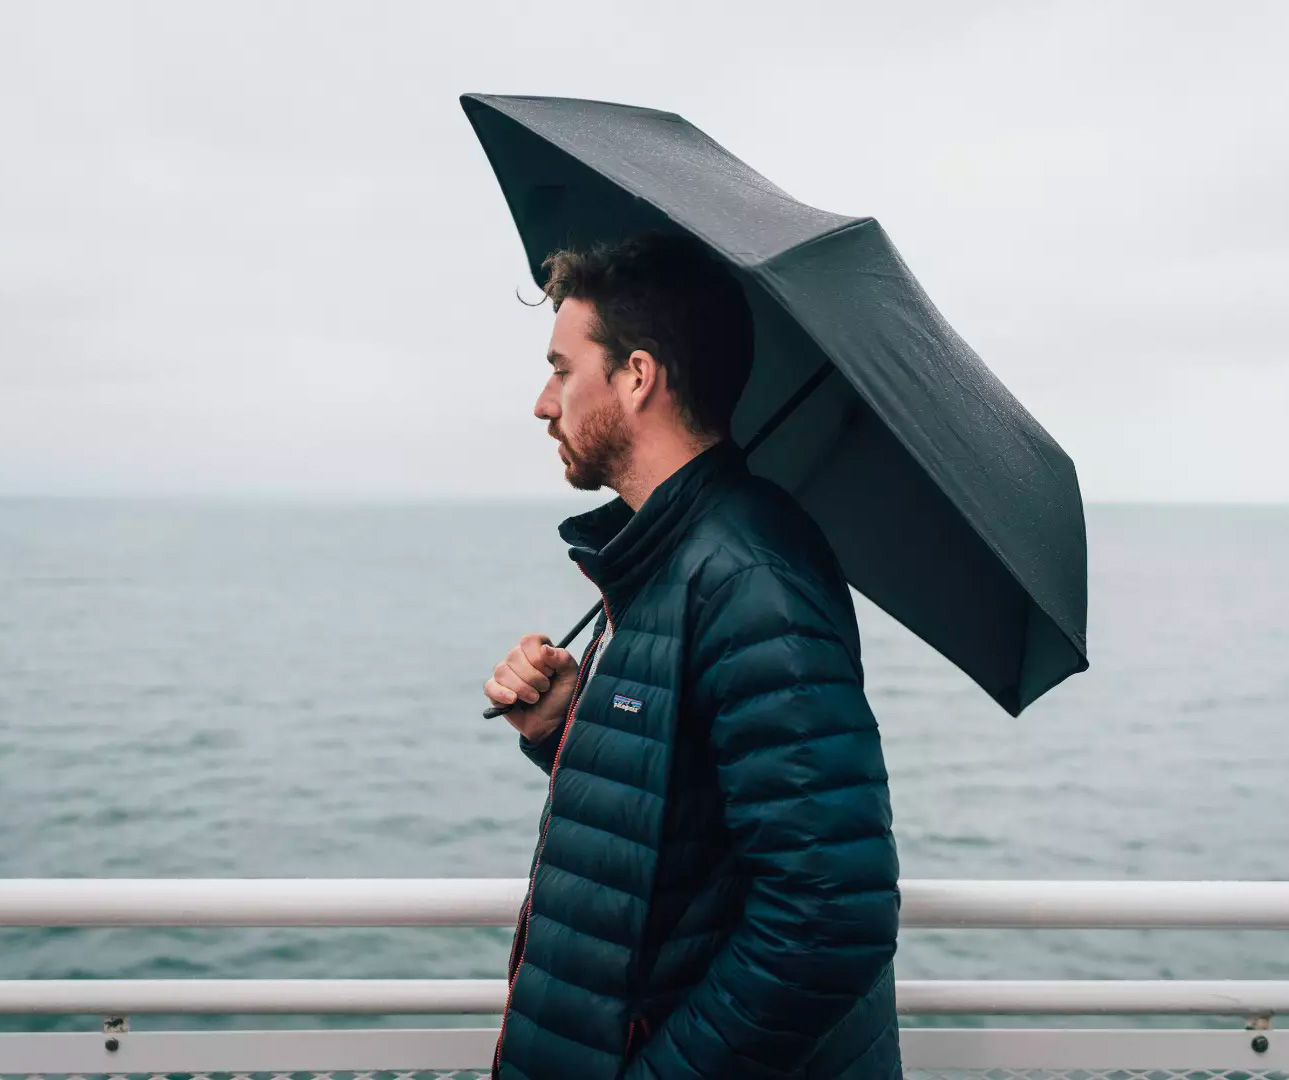 This Windproof Umbrella Blows Away the Competition at werd.com